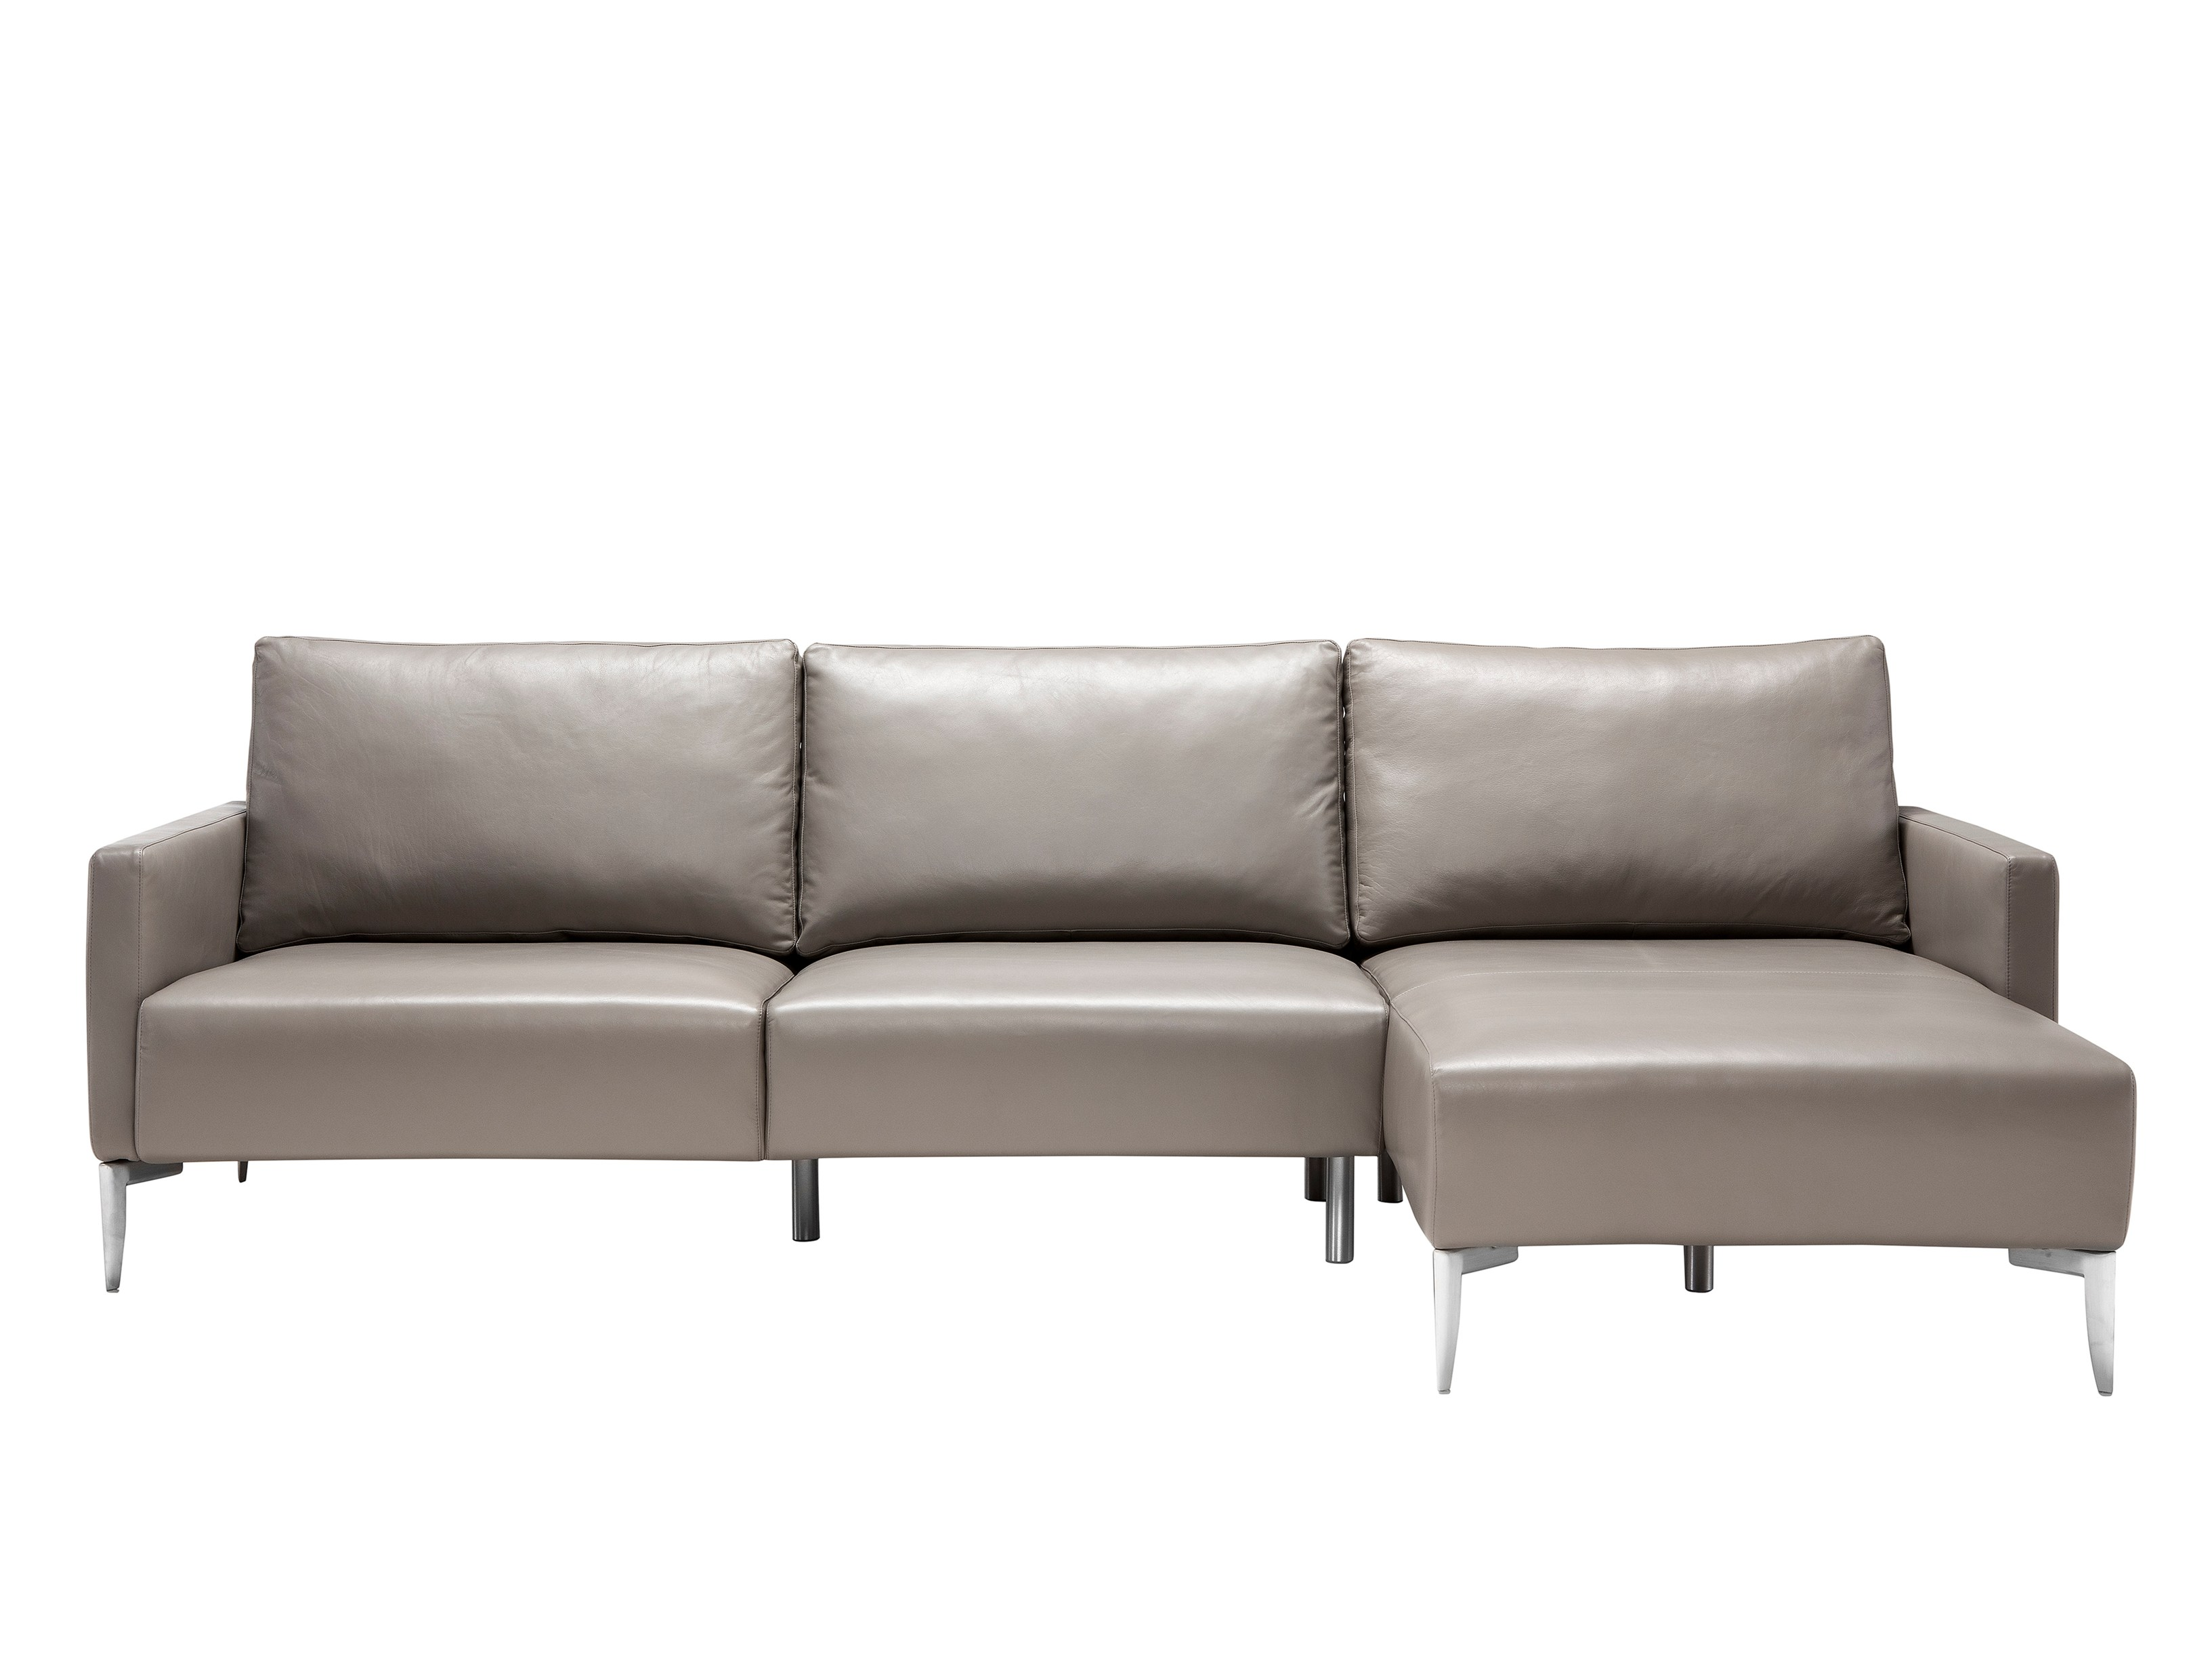 sofa with chaise longue amalfi by amura design arco